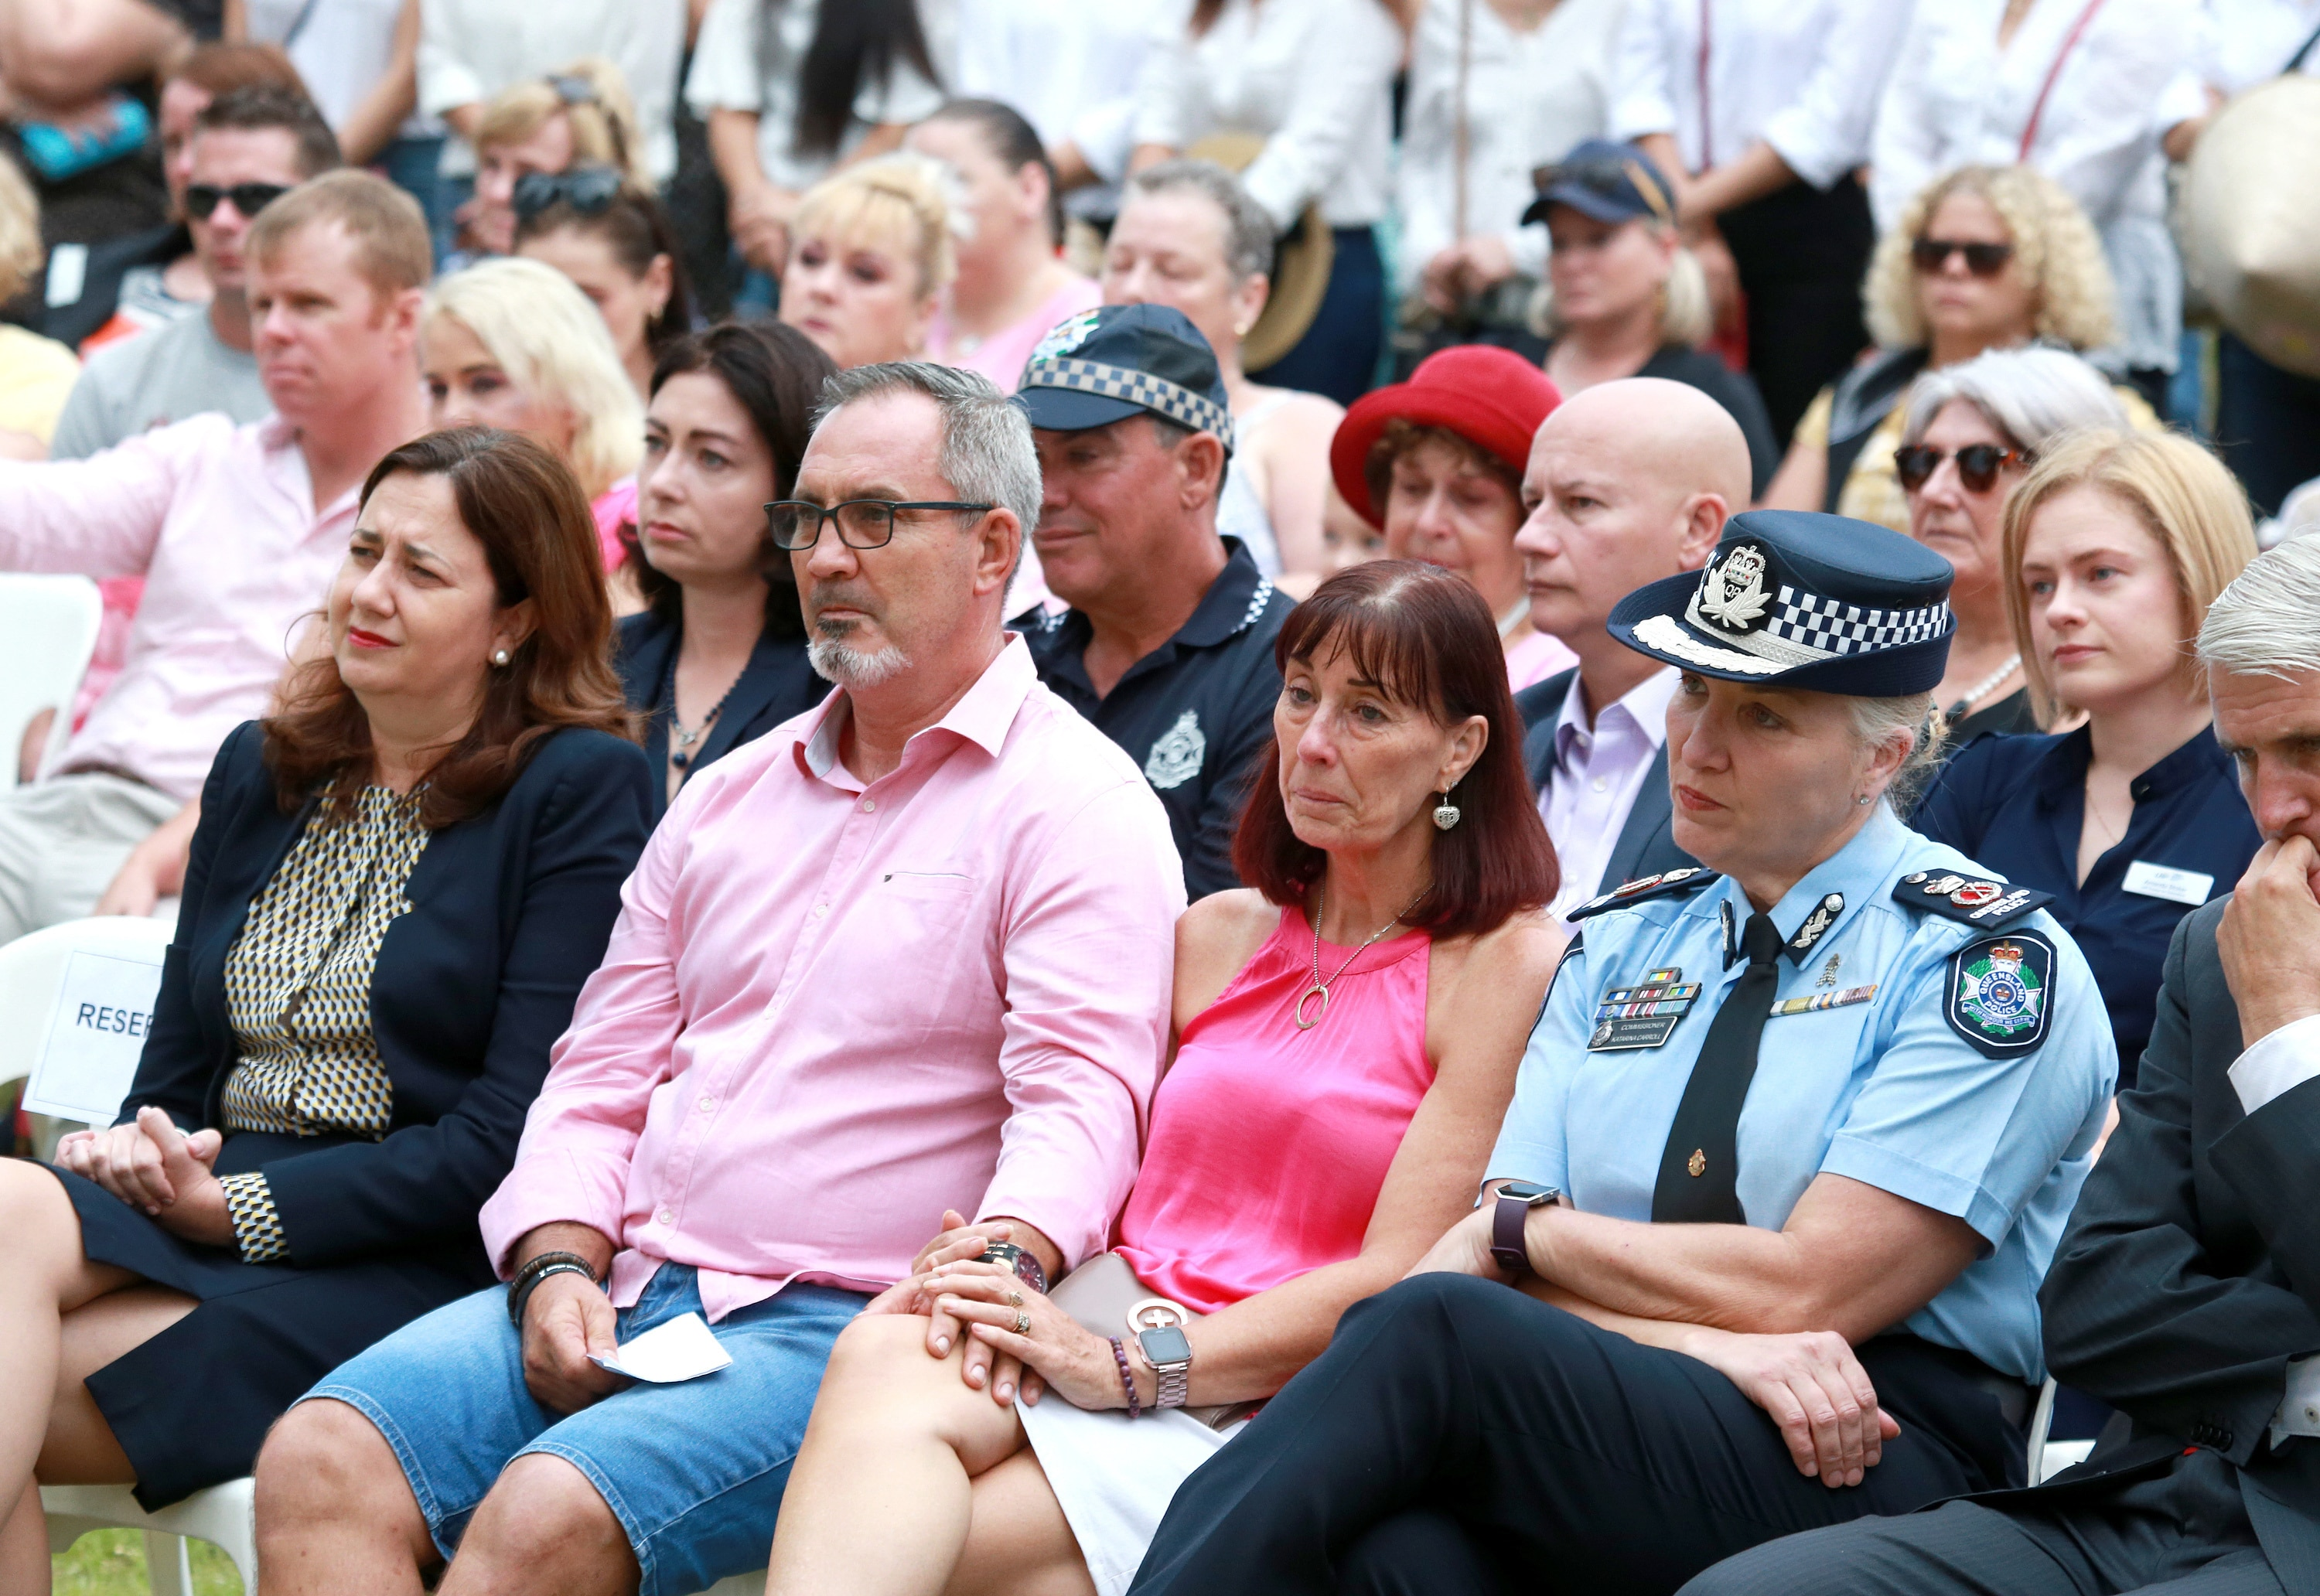 Hannah Clarks parents Lloyd and Suzanne Clark are flanked by Queensland Premier Annastasia Palaszczuk and Queensland Police Commissioner Katarina Carroll.